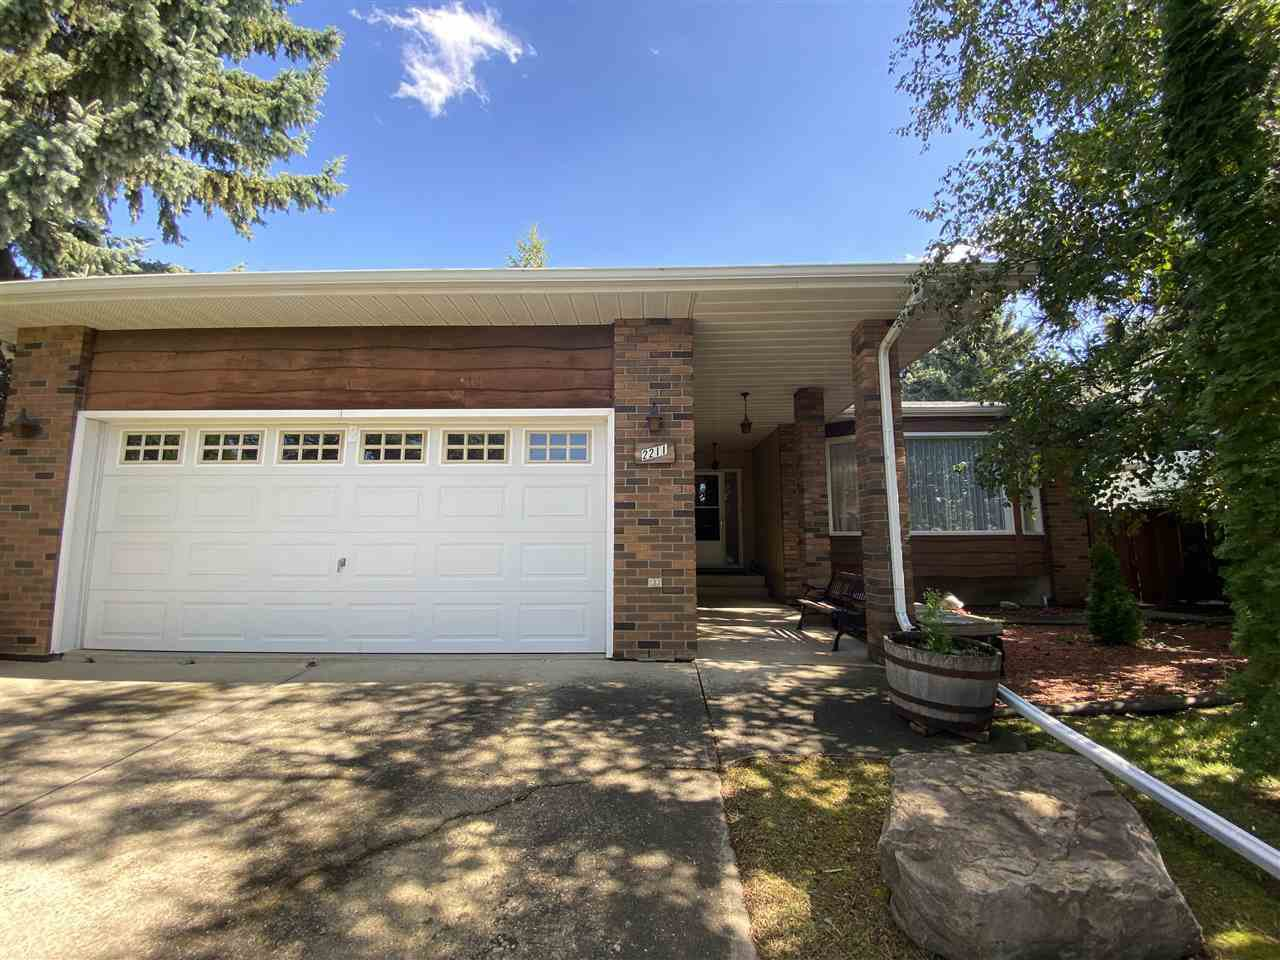 Main Photo: 2211 85 Street in Edmonton: Zone 29 House for sale : MLS®# E4211803